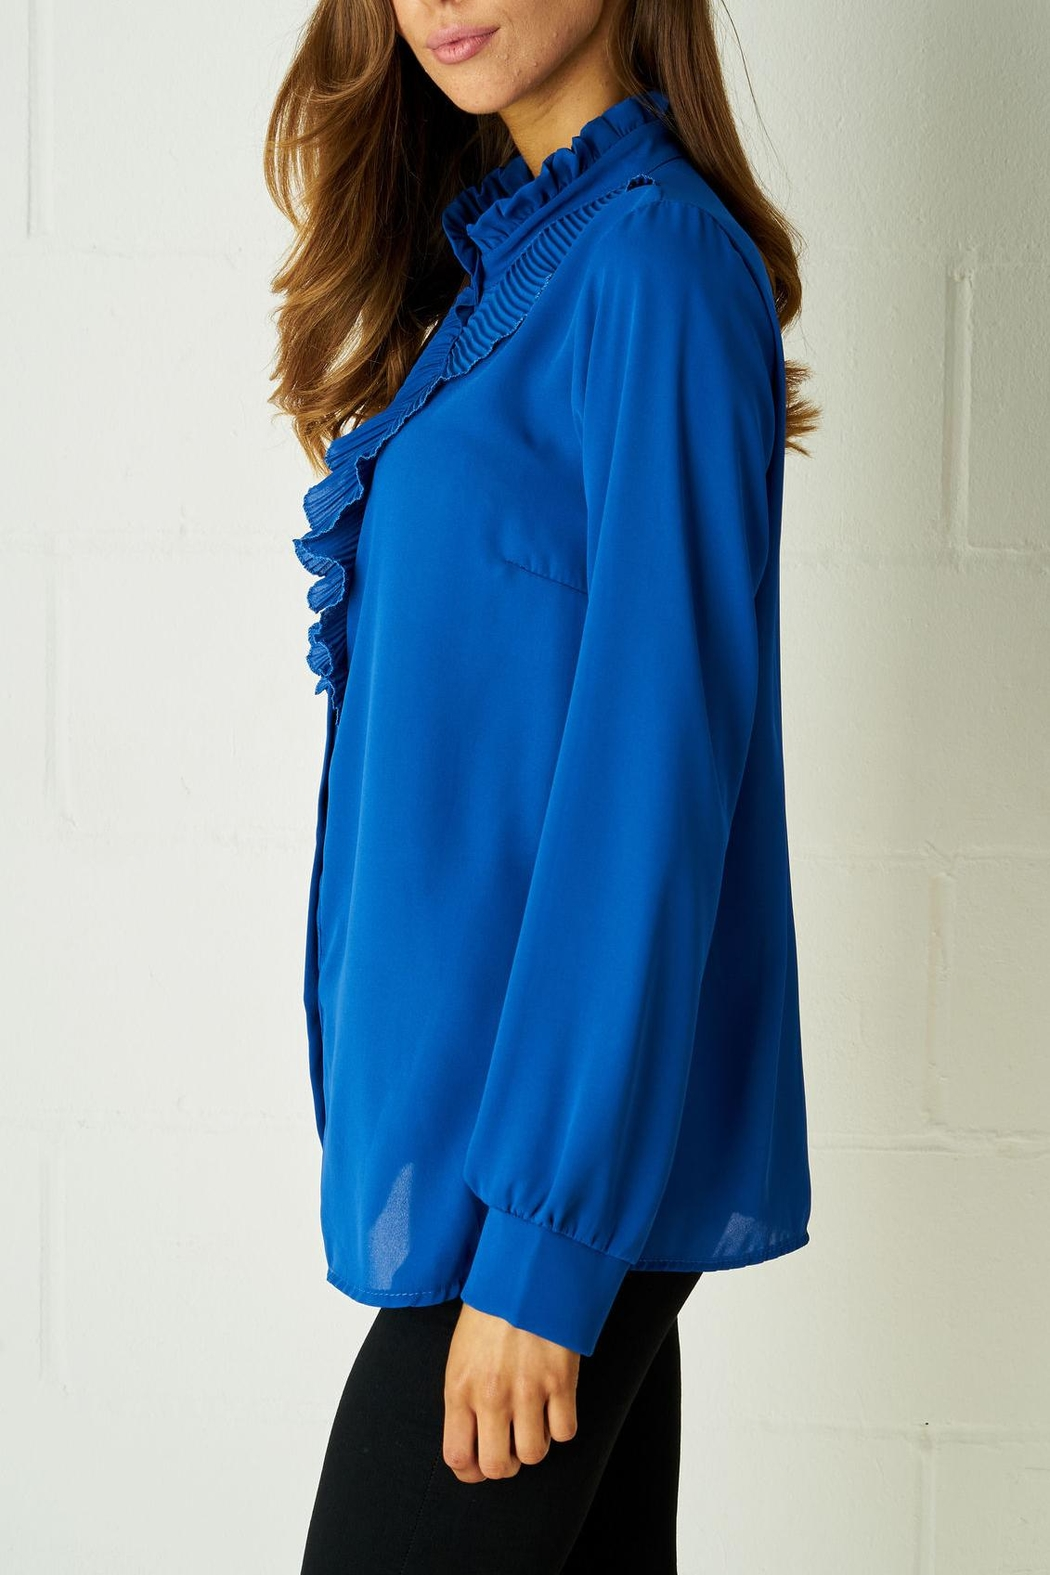 frontrow Blue Ruffle Blouse - Front Full Image